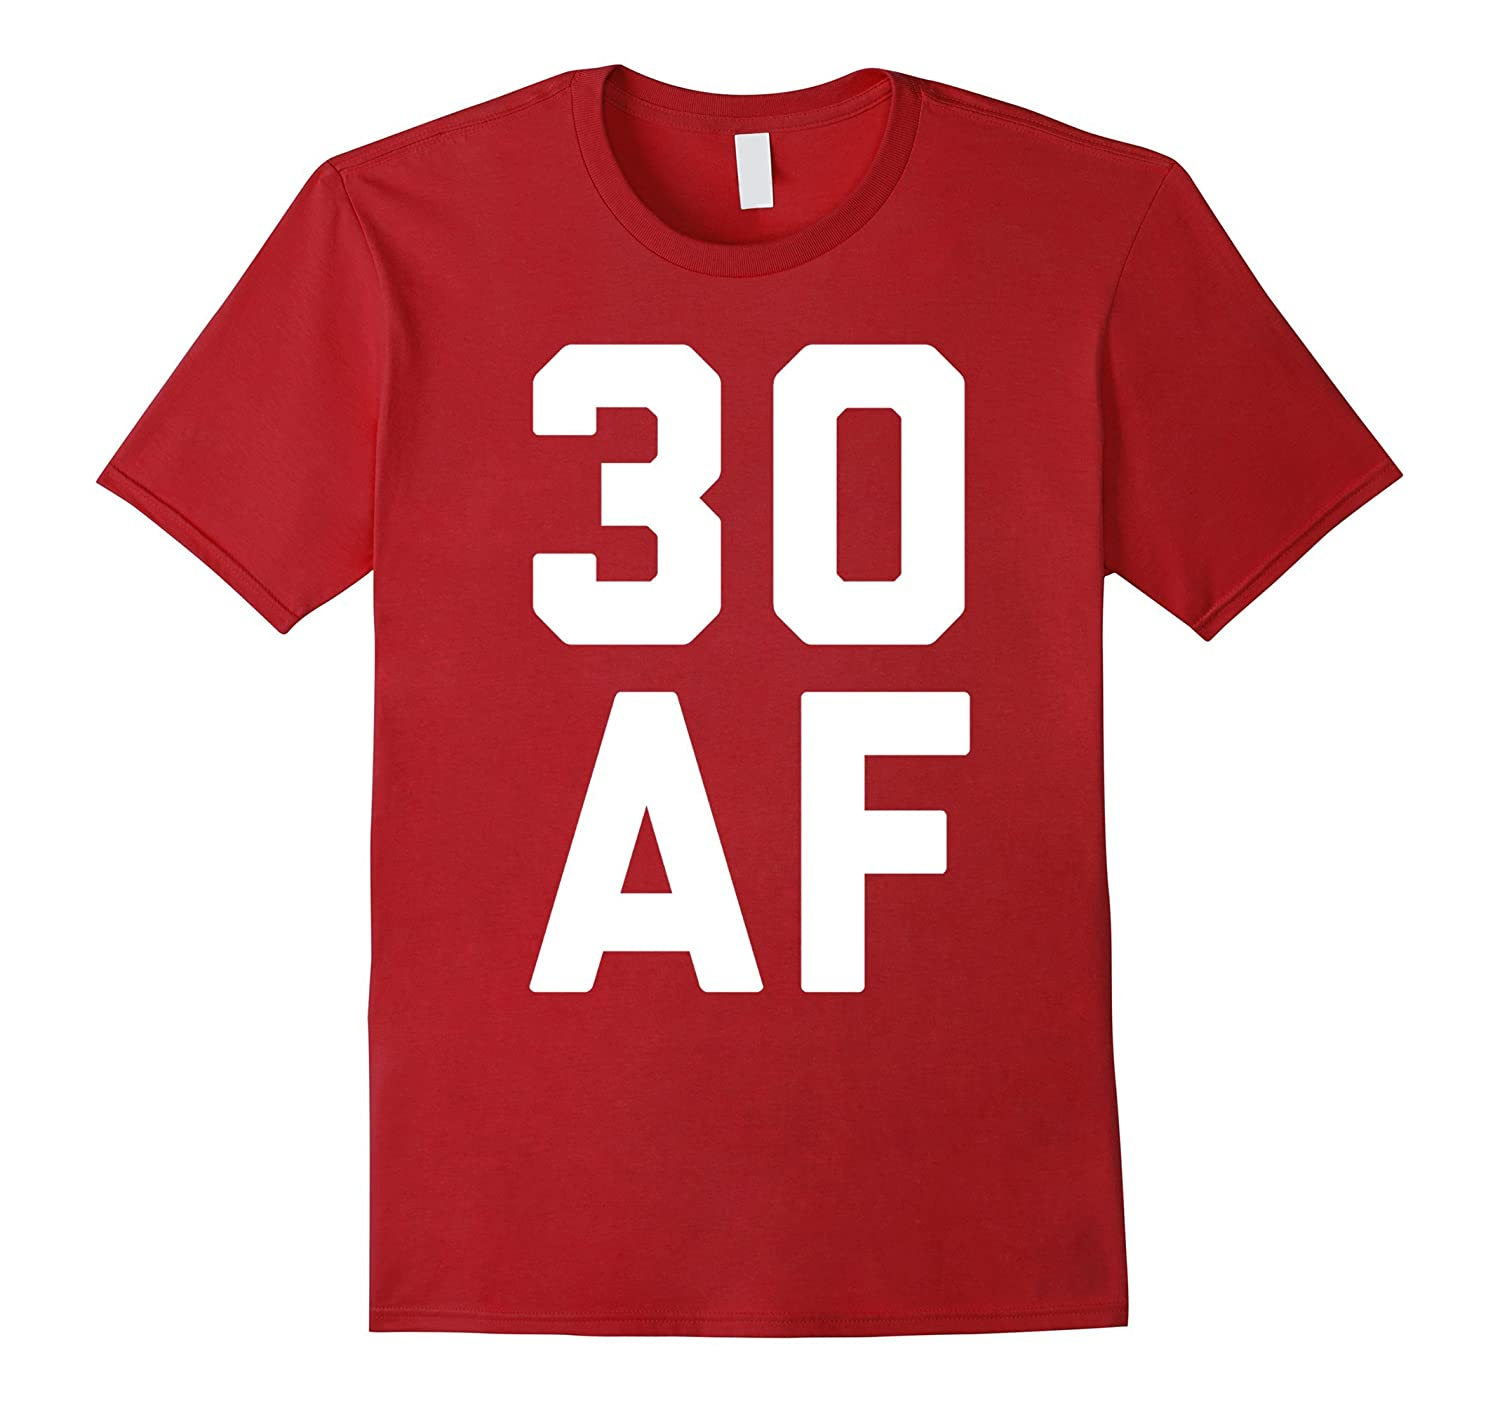 30 AF T-Shirt - 30th Birthday Shirt Men Women Thirty Gift-CL